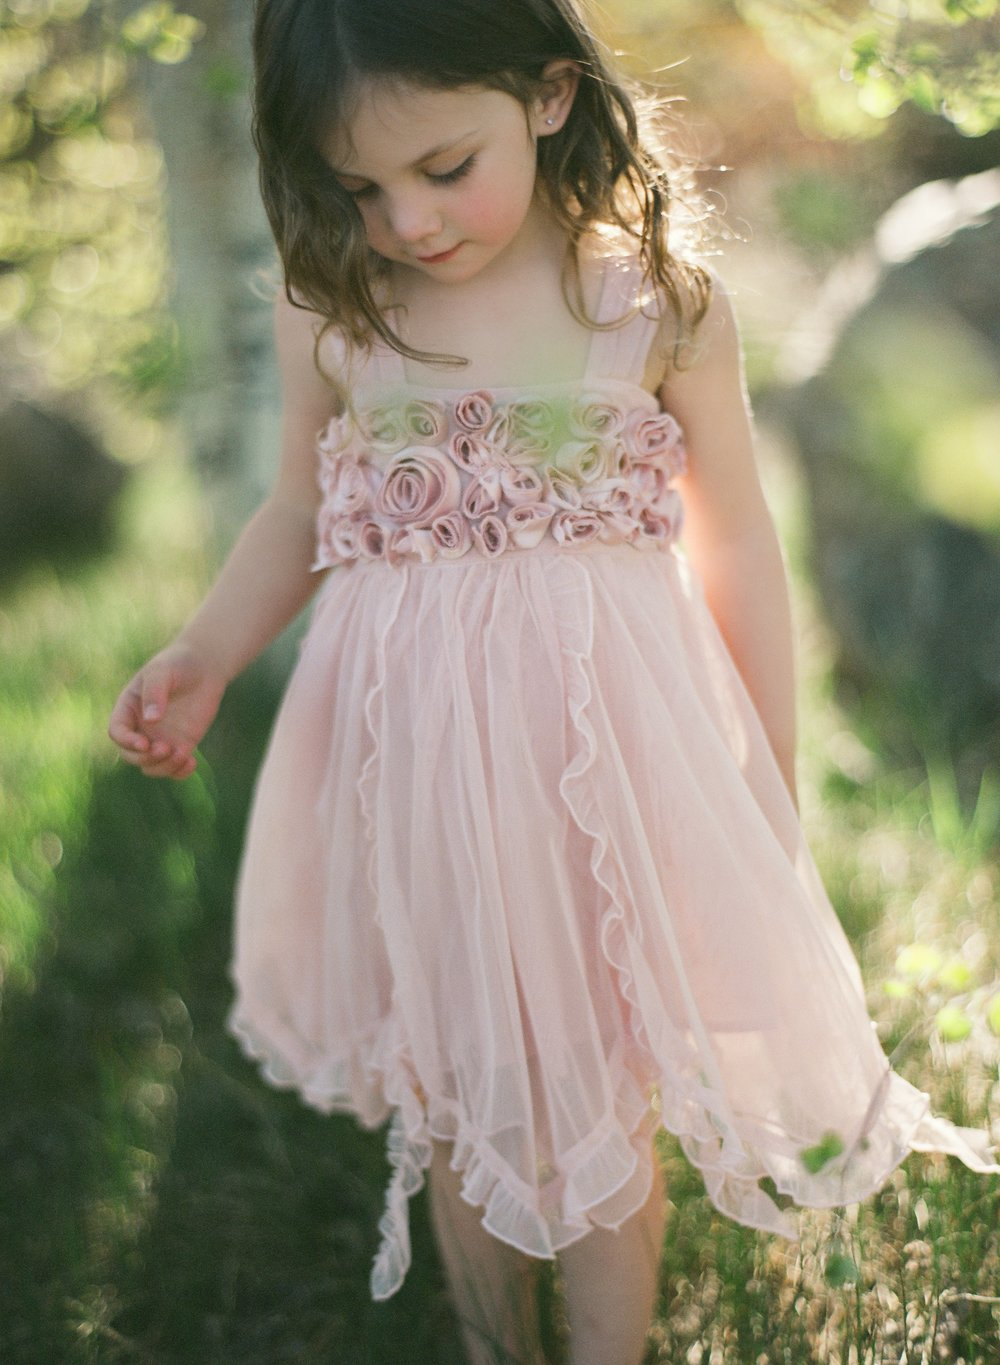 tahoe_ruffles_and_ruffnecks_children's_boutique_bretcole.com_116.jpg